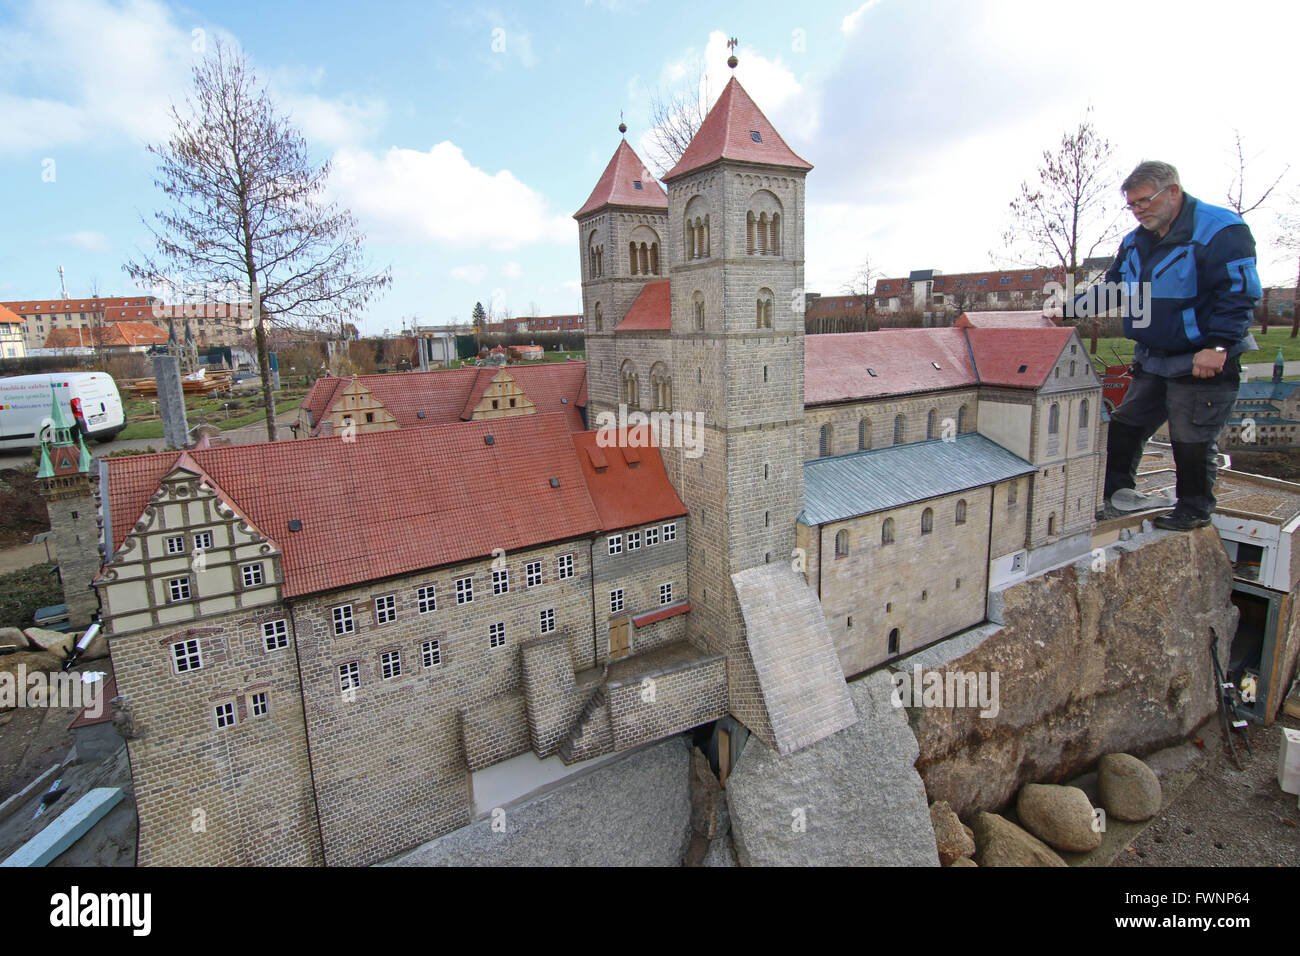 1st apr 2016 the miniature version of the castle of quedlinburg at the miniature park kleiner harz in wernigerode germany 1 april 2016